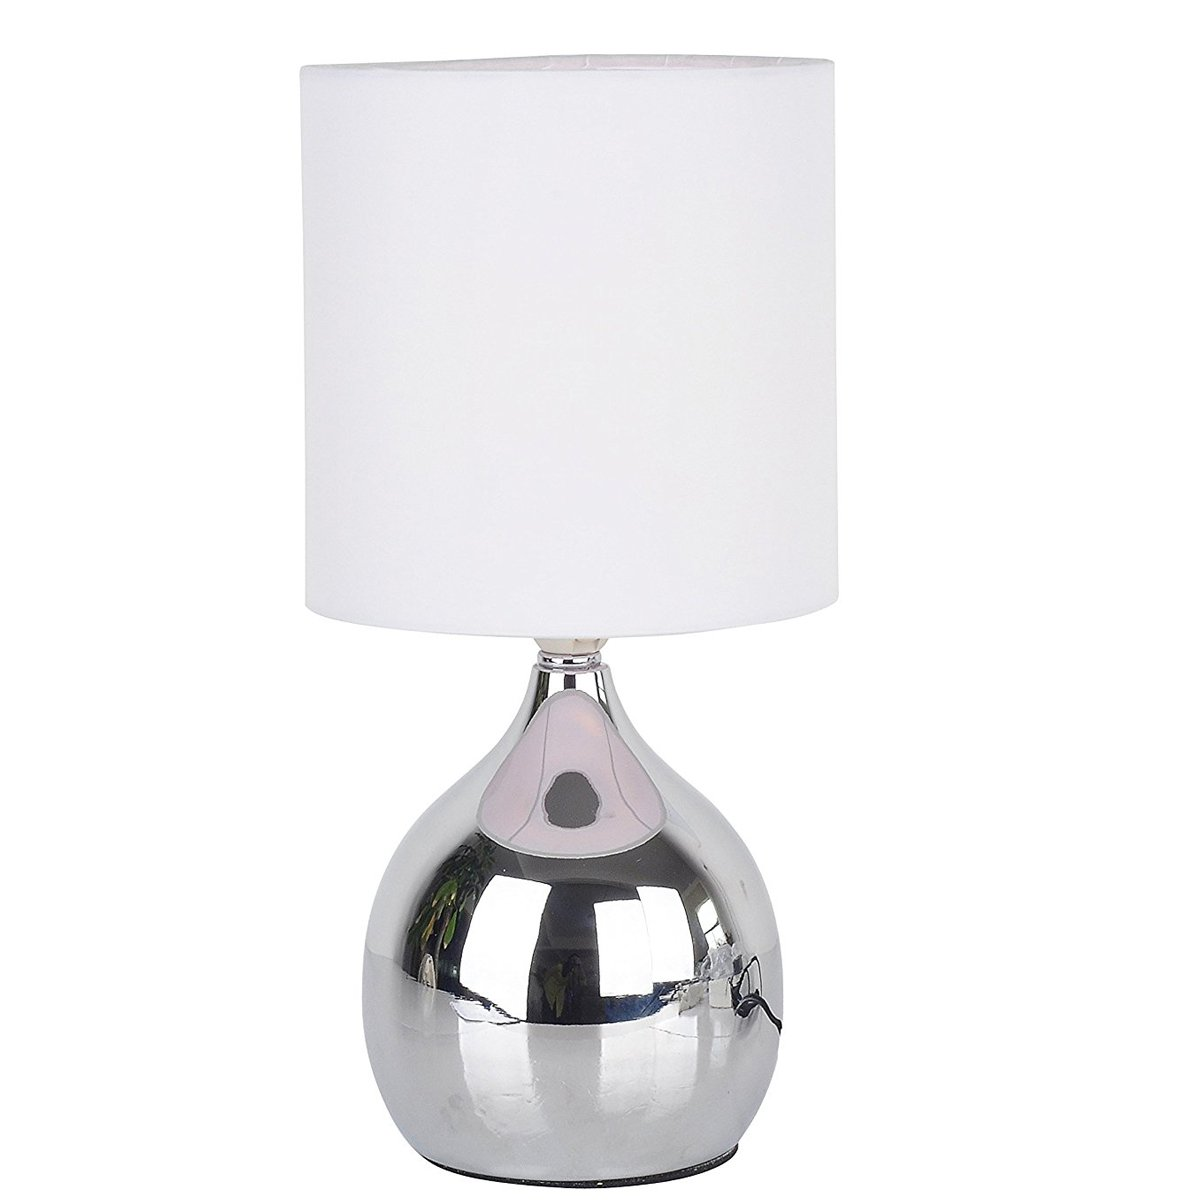 tiffanyhouse Touch Lamps 4 Stage White Chrome Mini Small Table Desk Bedside Light Wide 6 inch Tall 12 inch